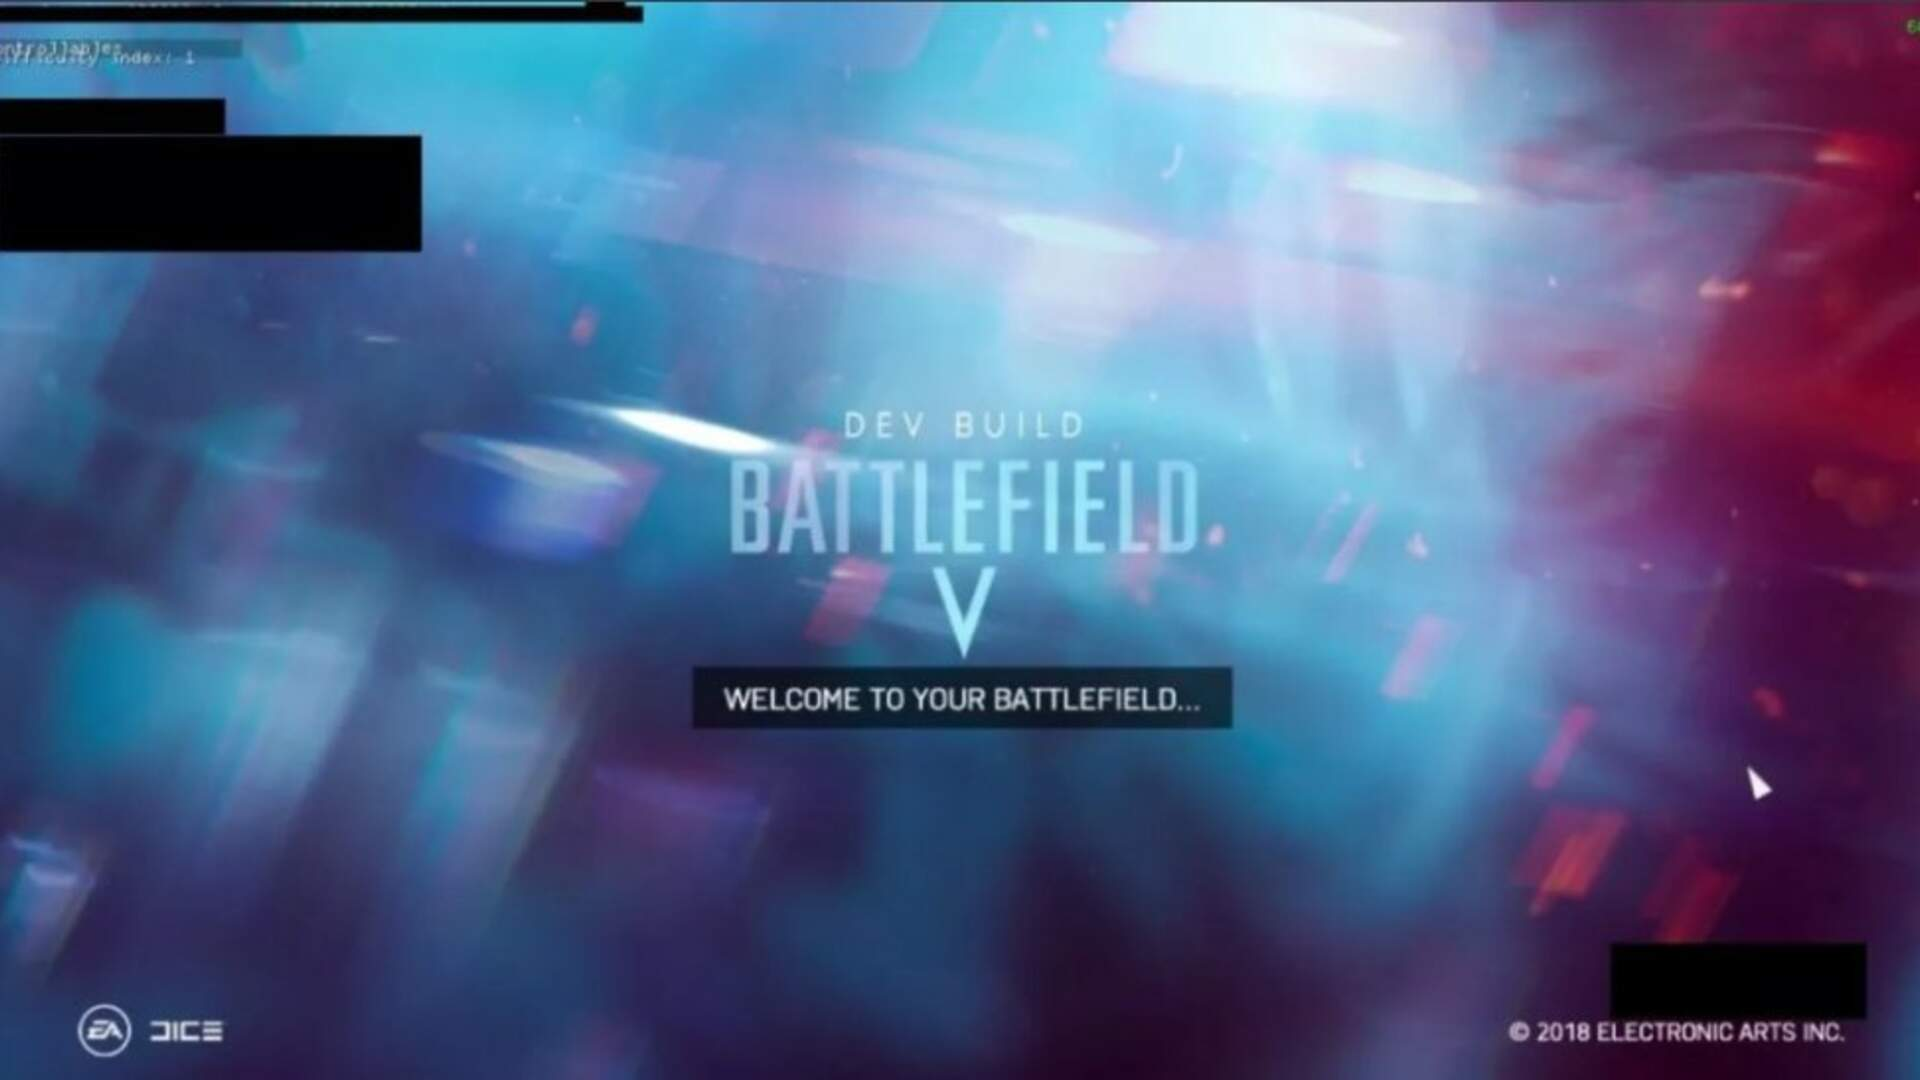 More Details Leak for Battlefield 5 for Campaign and Co-Op